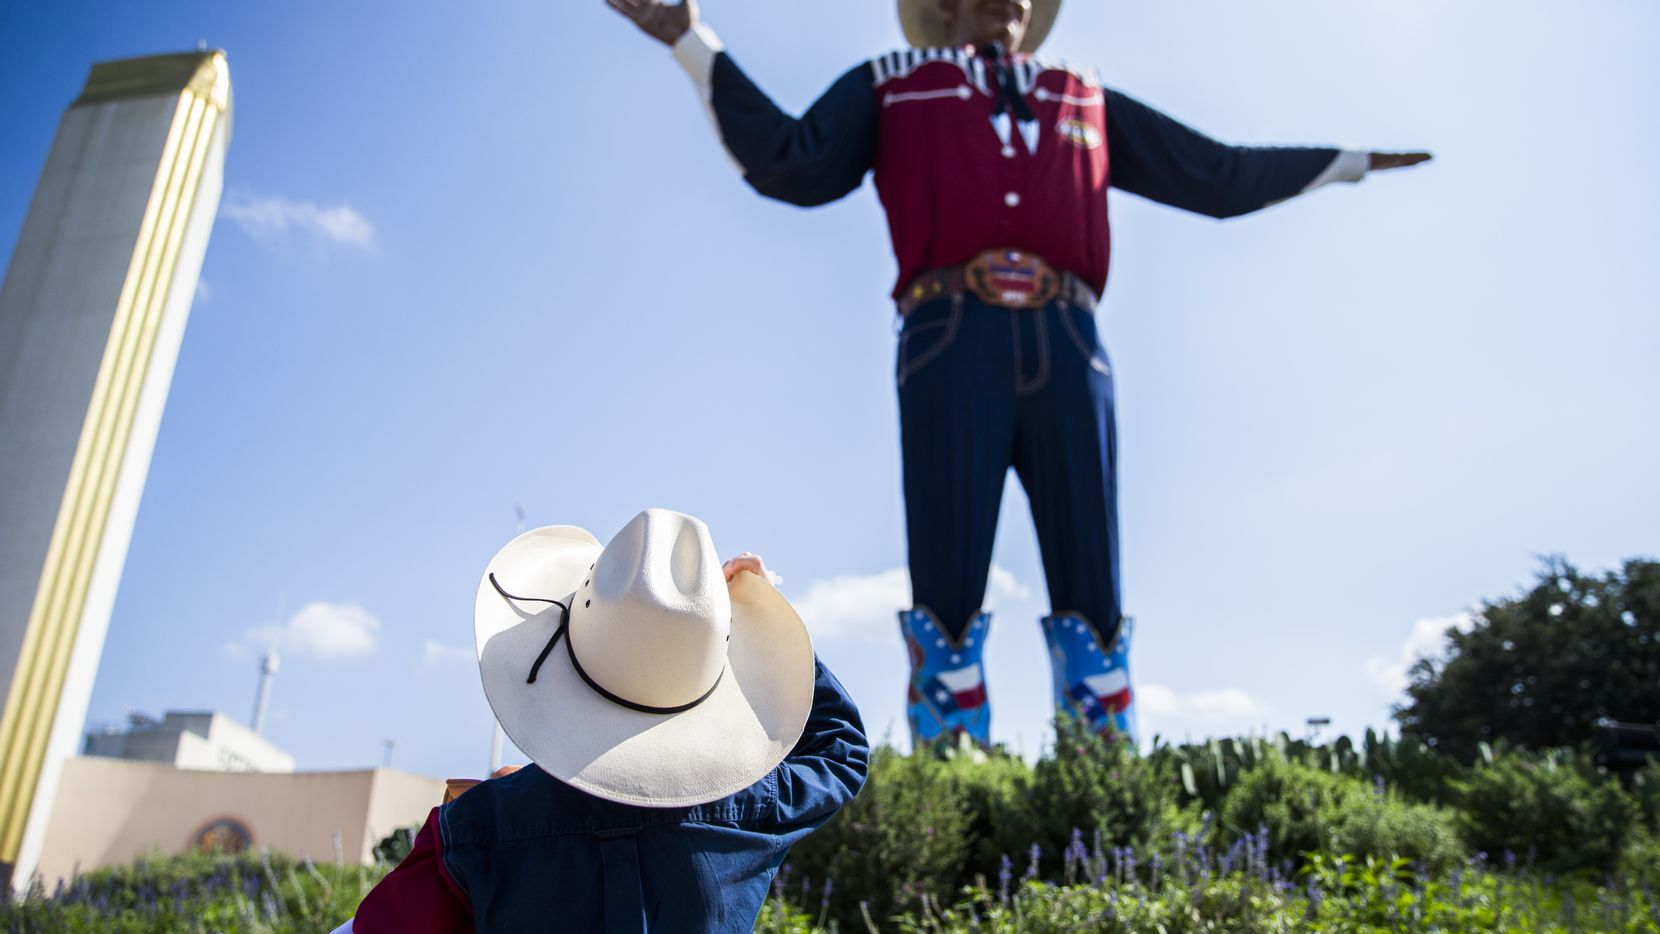 Isaiah Lee, 6, of Weatherford looks up at Big Tex at the State Fair of Texas on Friday, October 4, 2019 at Fair Park in Dallas. (Ashley Landis/The Dallas Morning News)